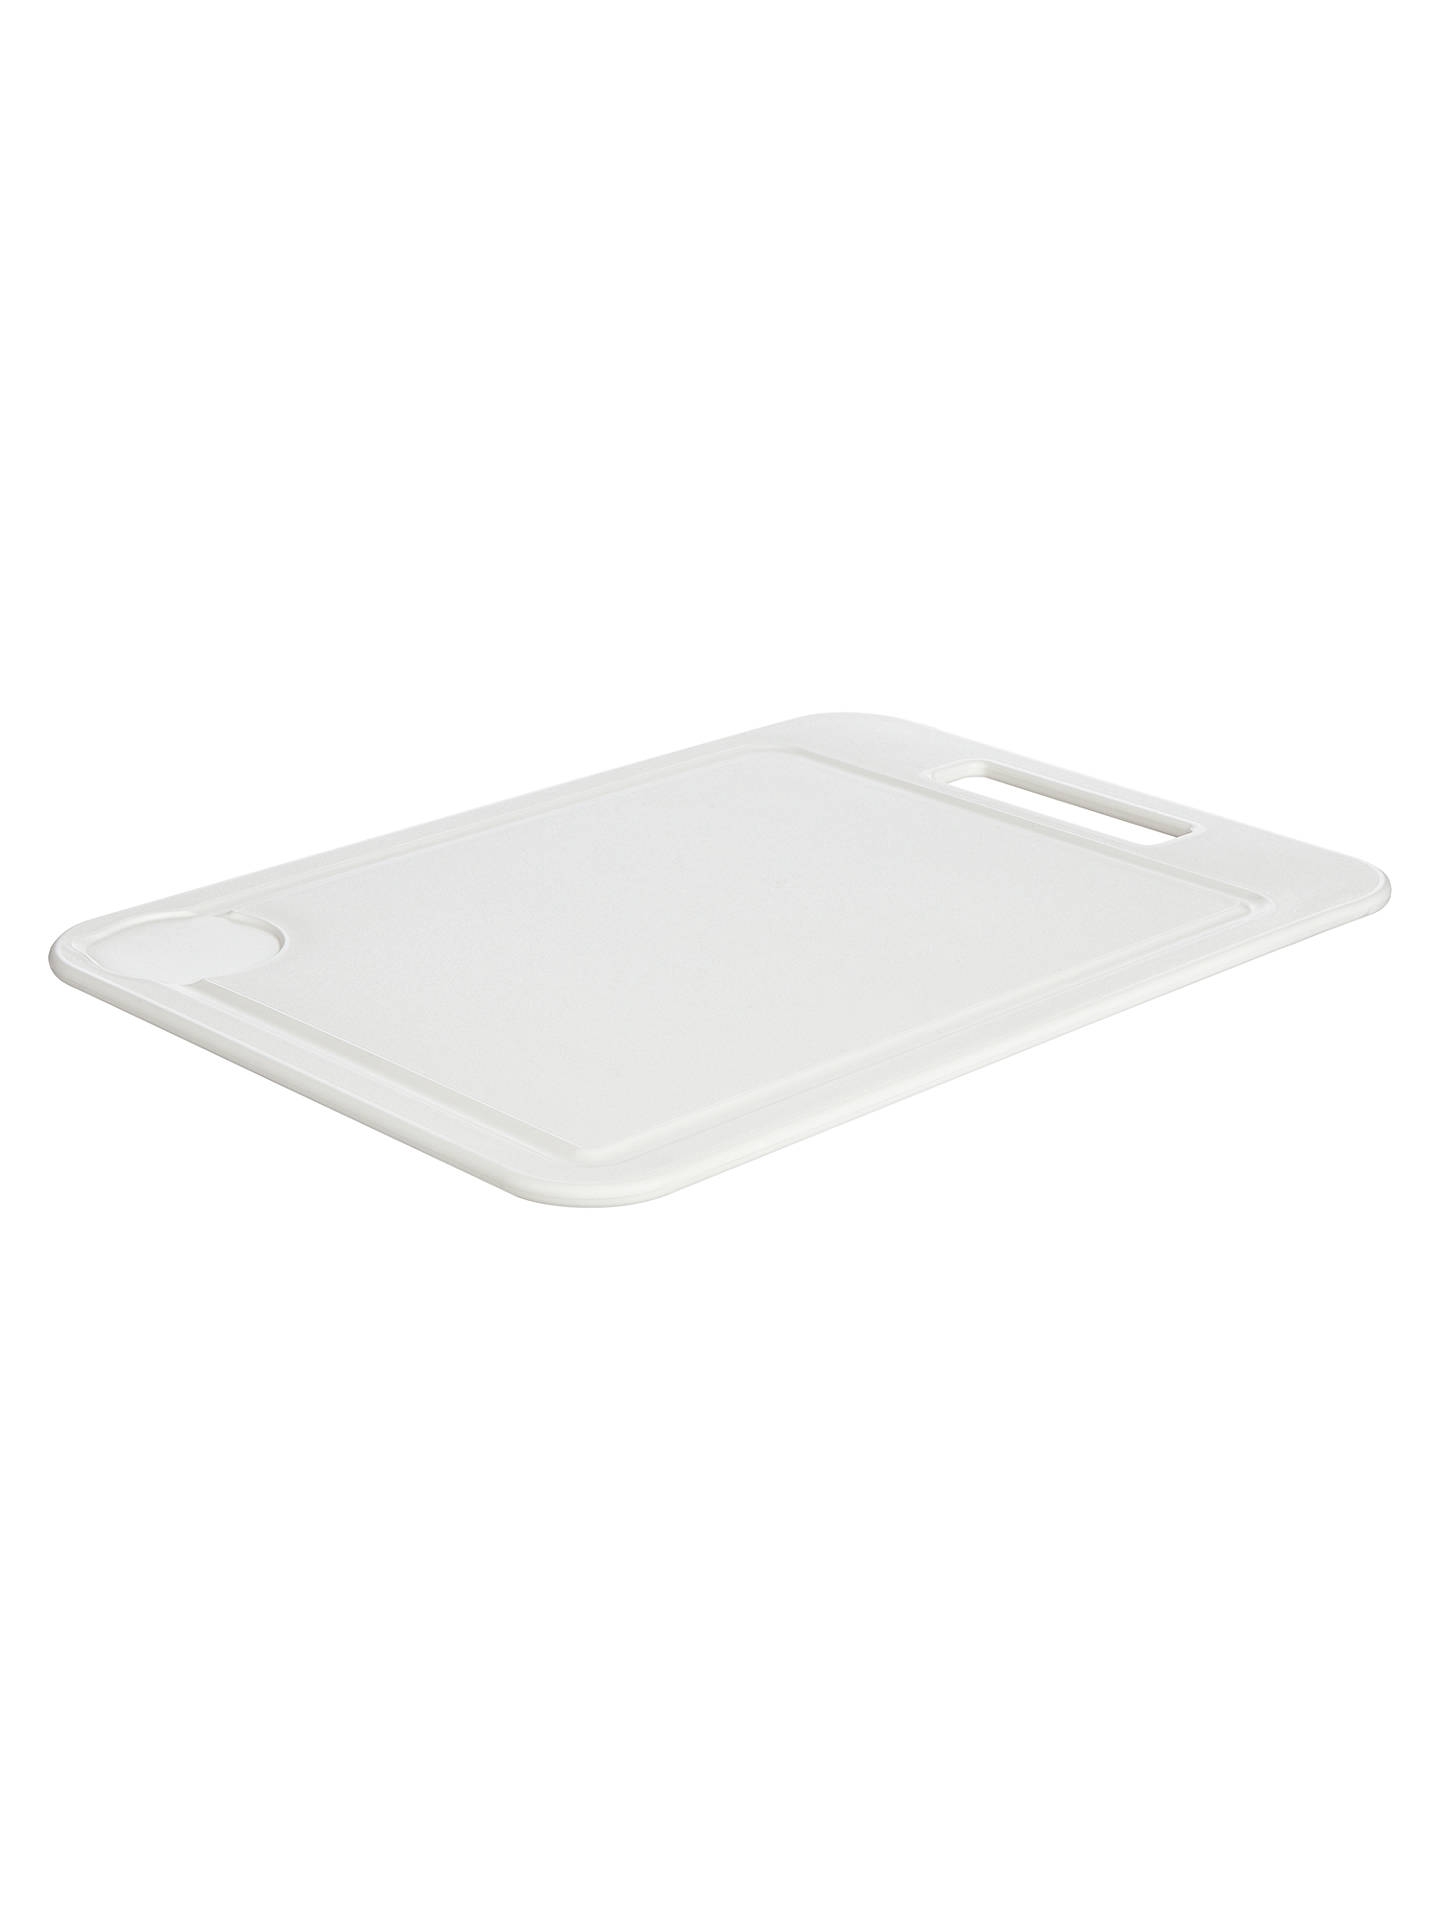 BuyJohn Lewis & Partners The Basics Chopping Board, White Online at johnlewis.com